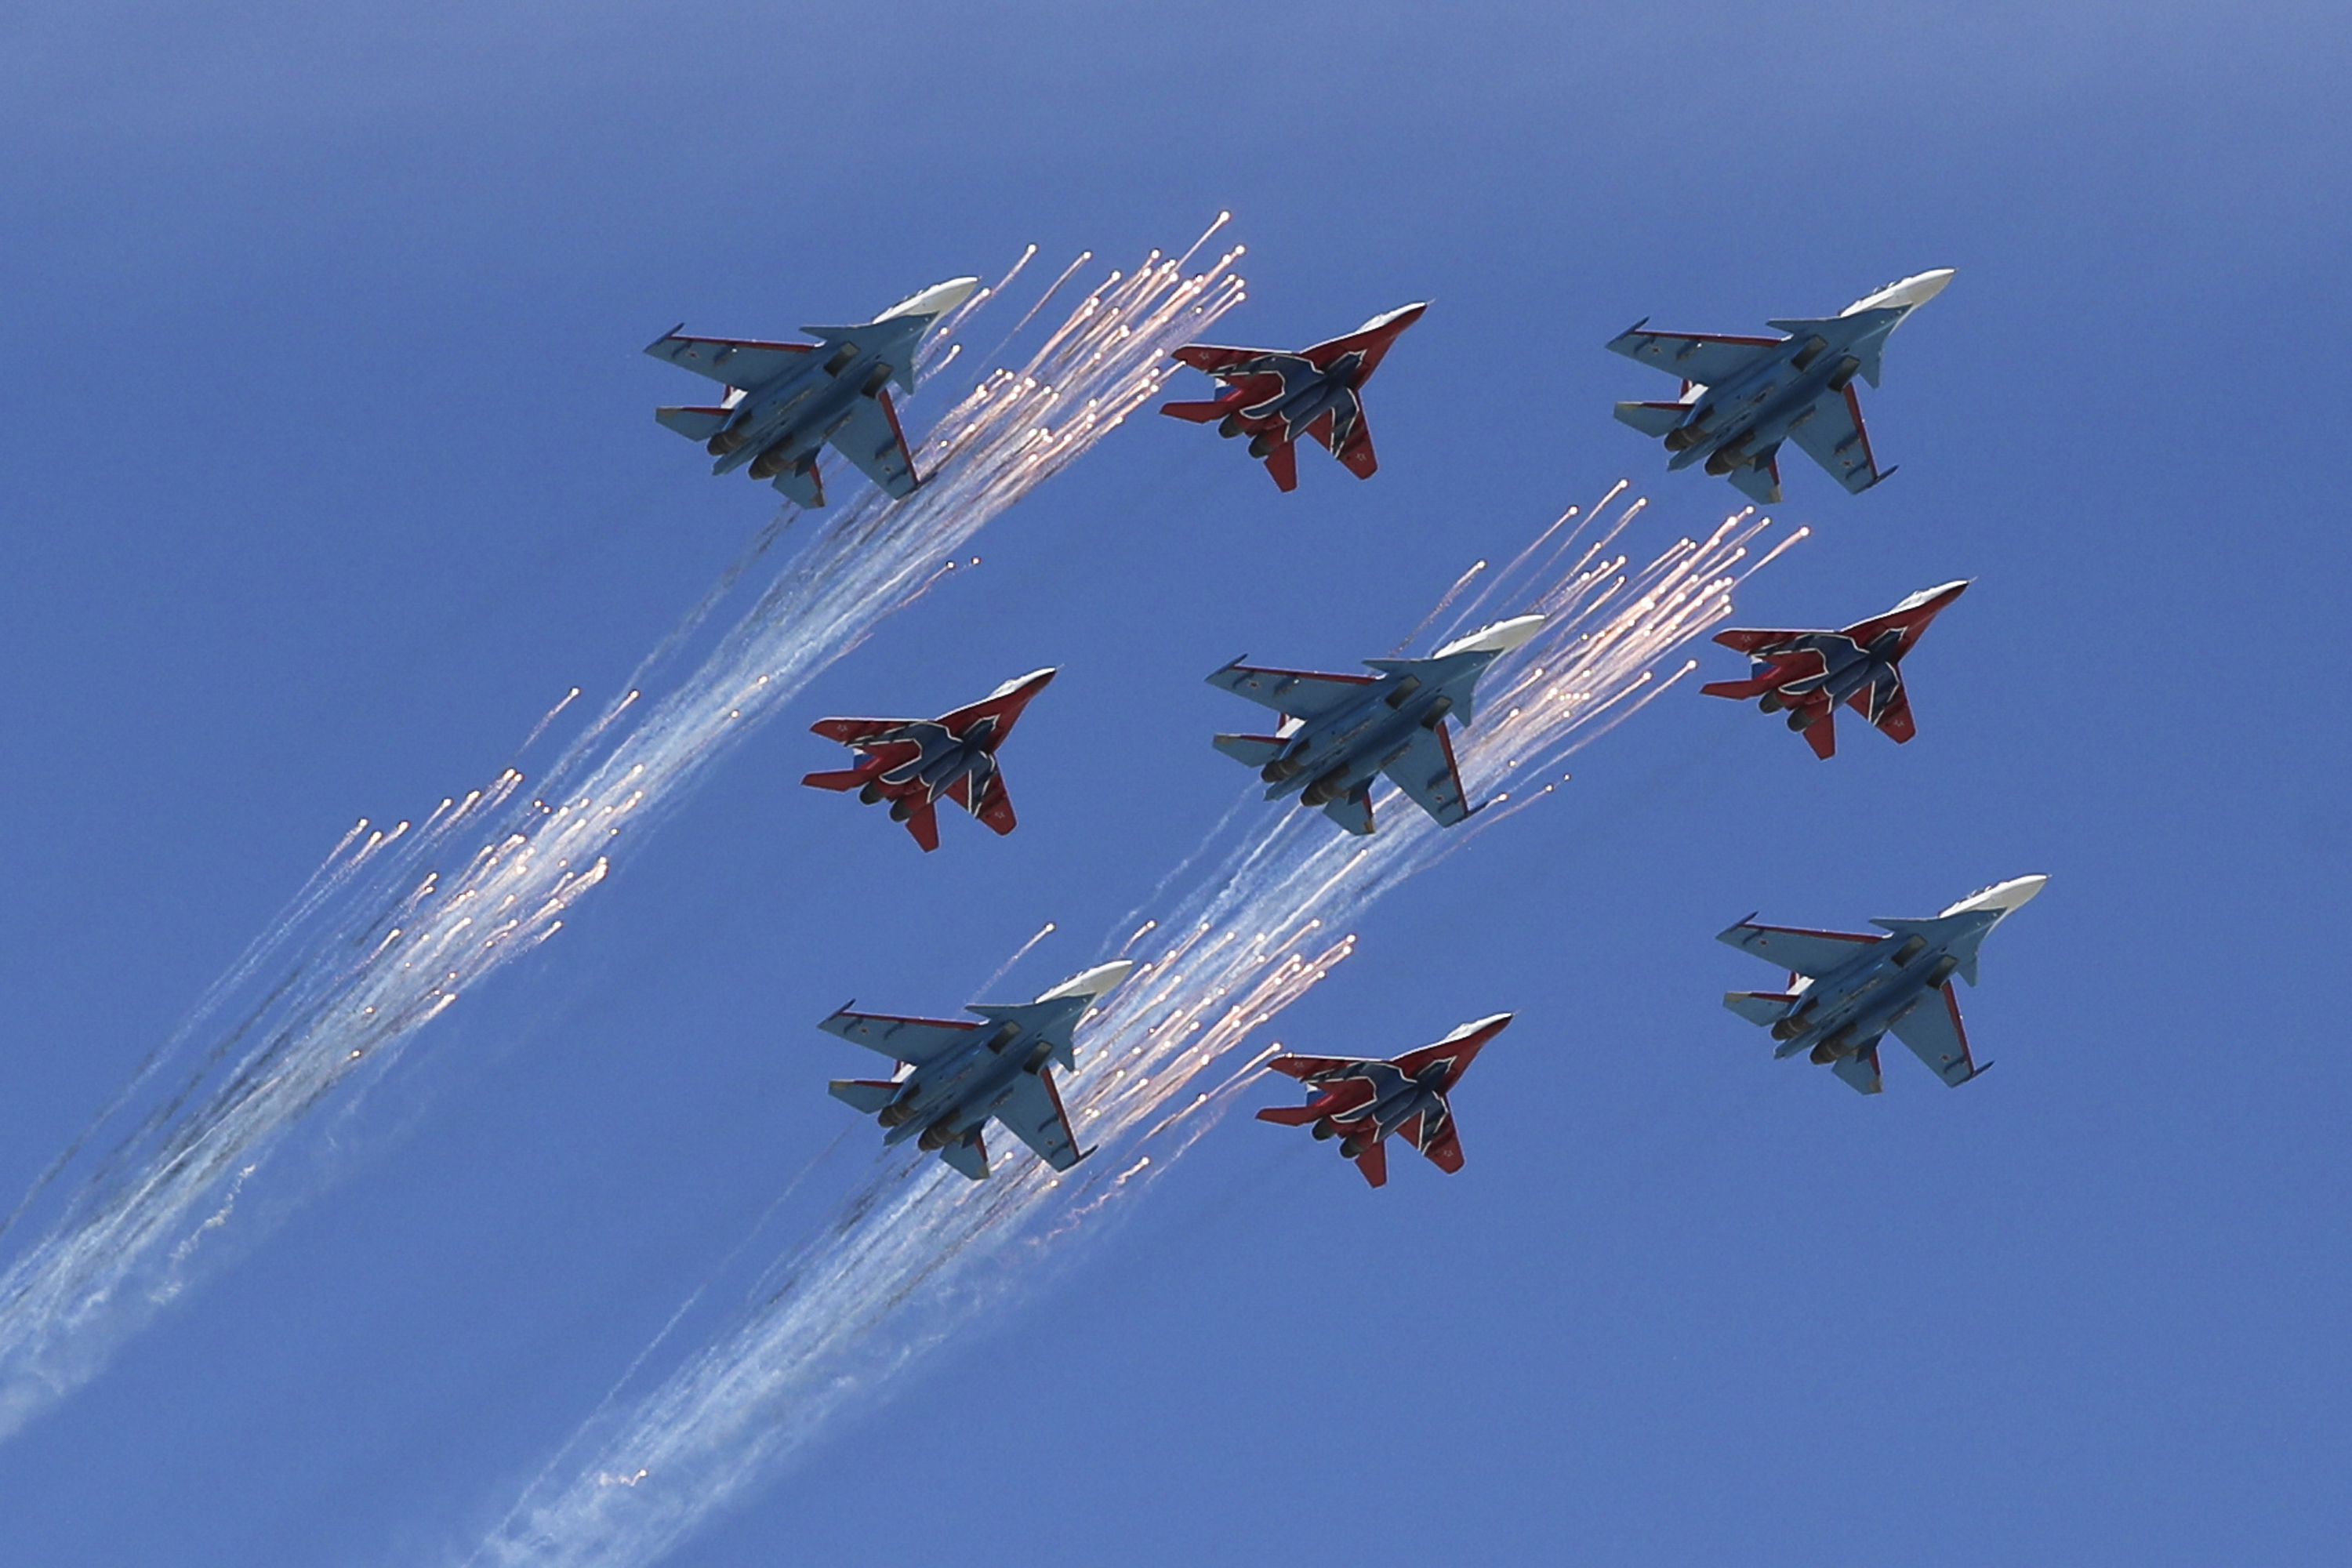 Mr Putin said the Russian air force would receive 160 new aircraft this year